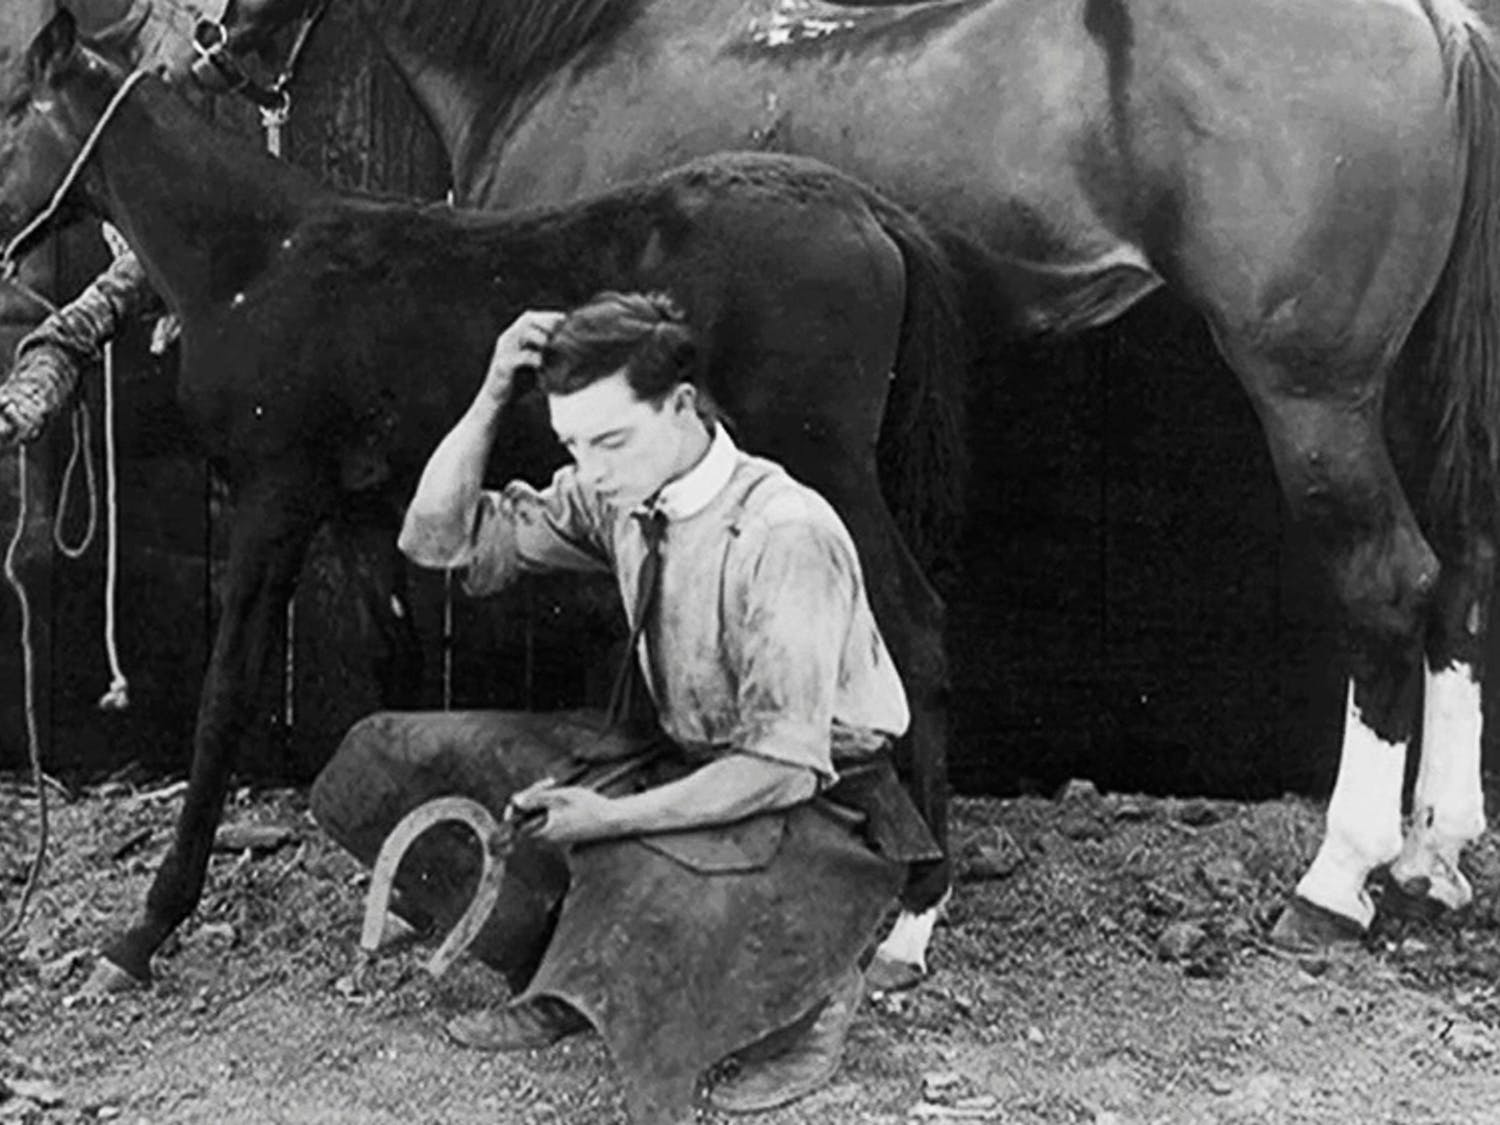 Still from Buster Keaton's silent film The Blacksmith. Photo courtesy of Tim Carless.